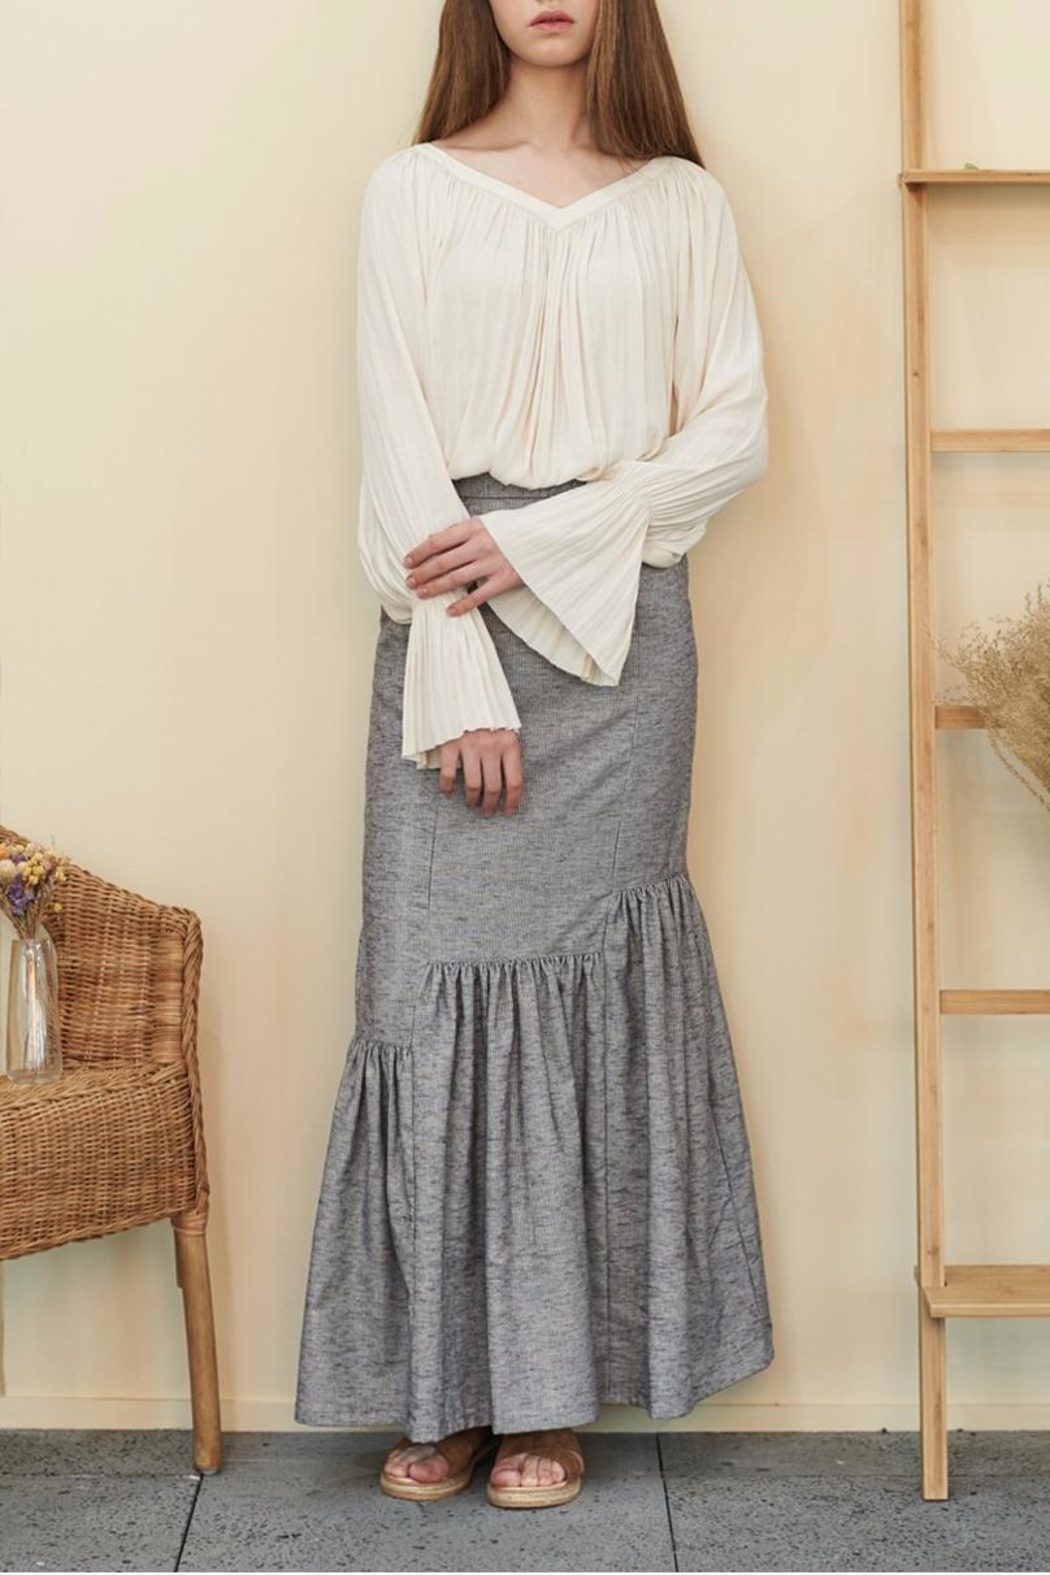 Muse by Rose Crepe Flowy Blouse - Main Image